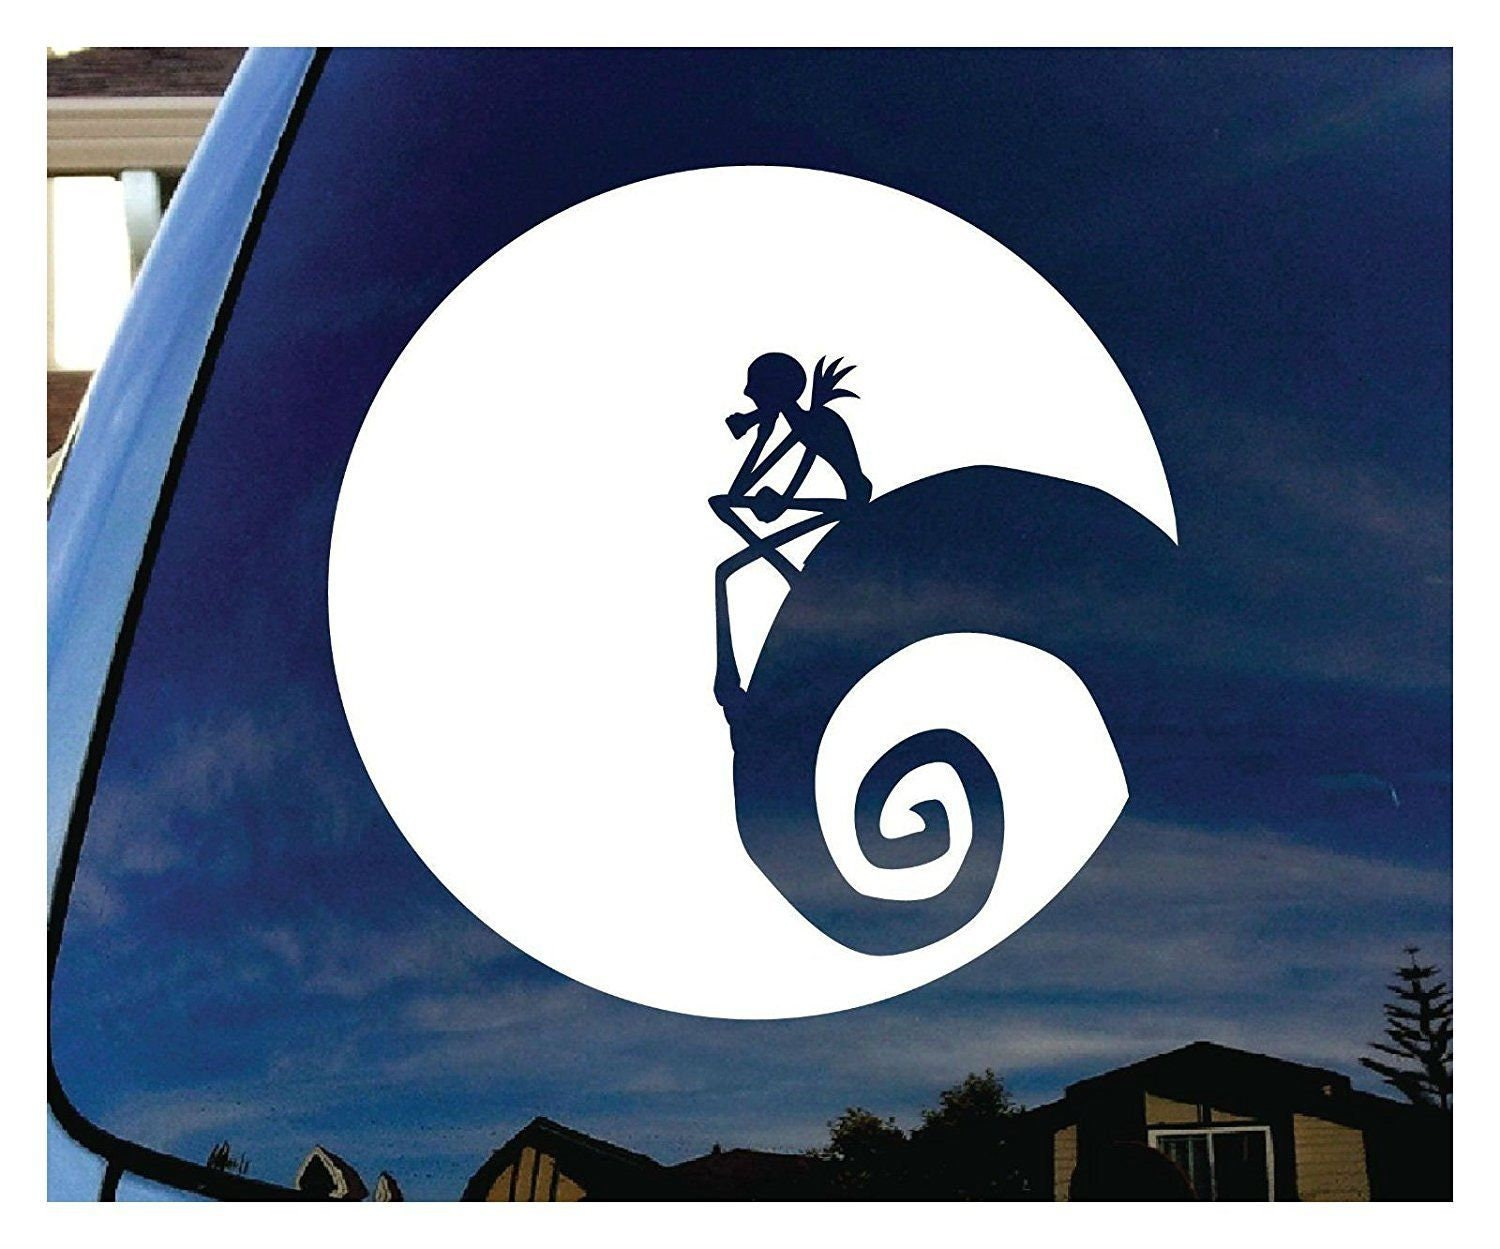 Jack Nightmare Before Christmas Moon Vinyl Decal Sticker for | Etsy